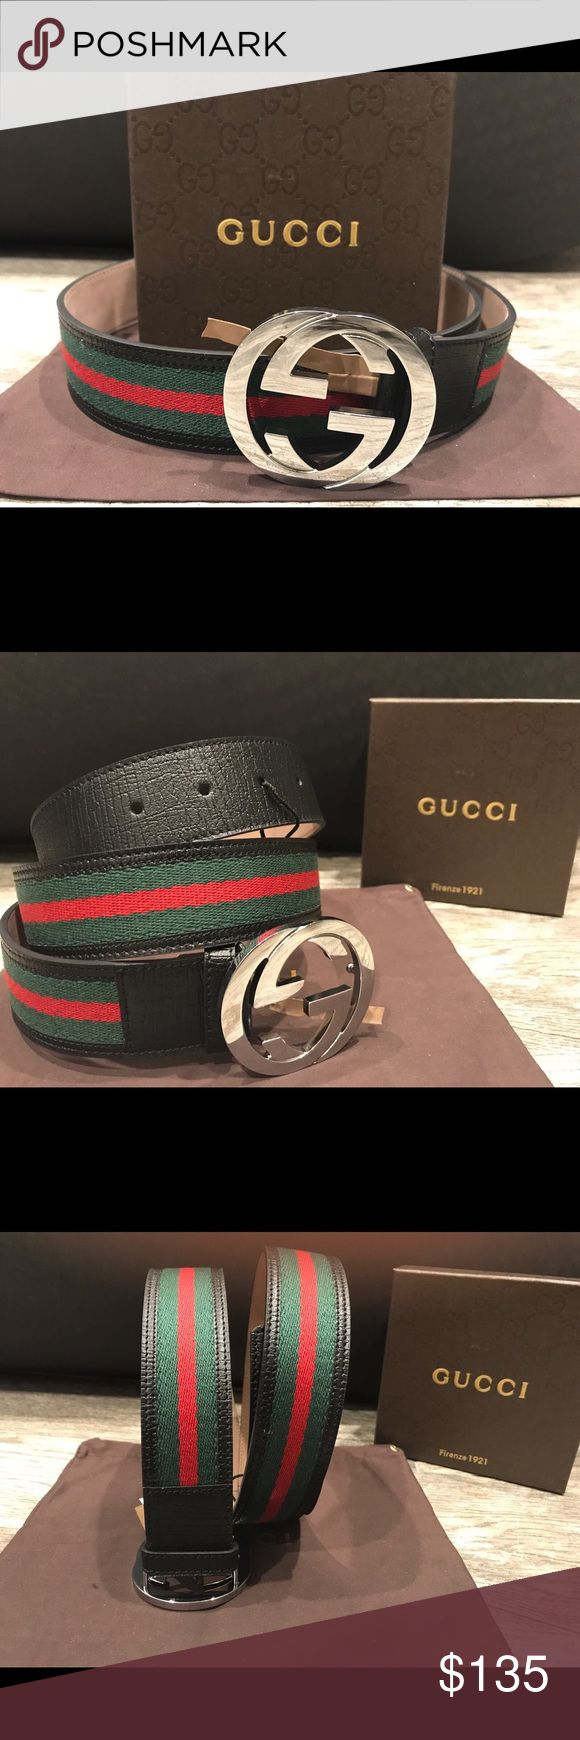 Authentic Mens Gucci Belt Black Green Red Hello this belt is made in Italy and is 100% authentic!  I have a few different sizes, so let me know if you need help with any sizing.  If you would like more than one belt I will give you a good deal! Please put in your respectable offers! Thank you and happy poshing!😊 Gucci Accessories Belts